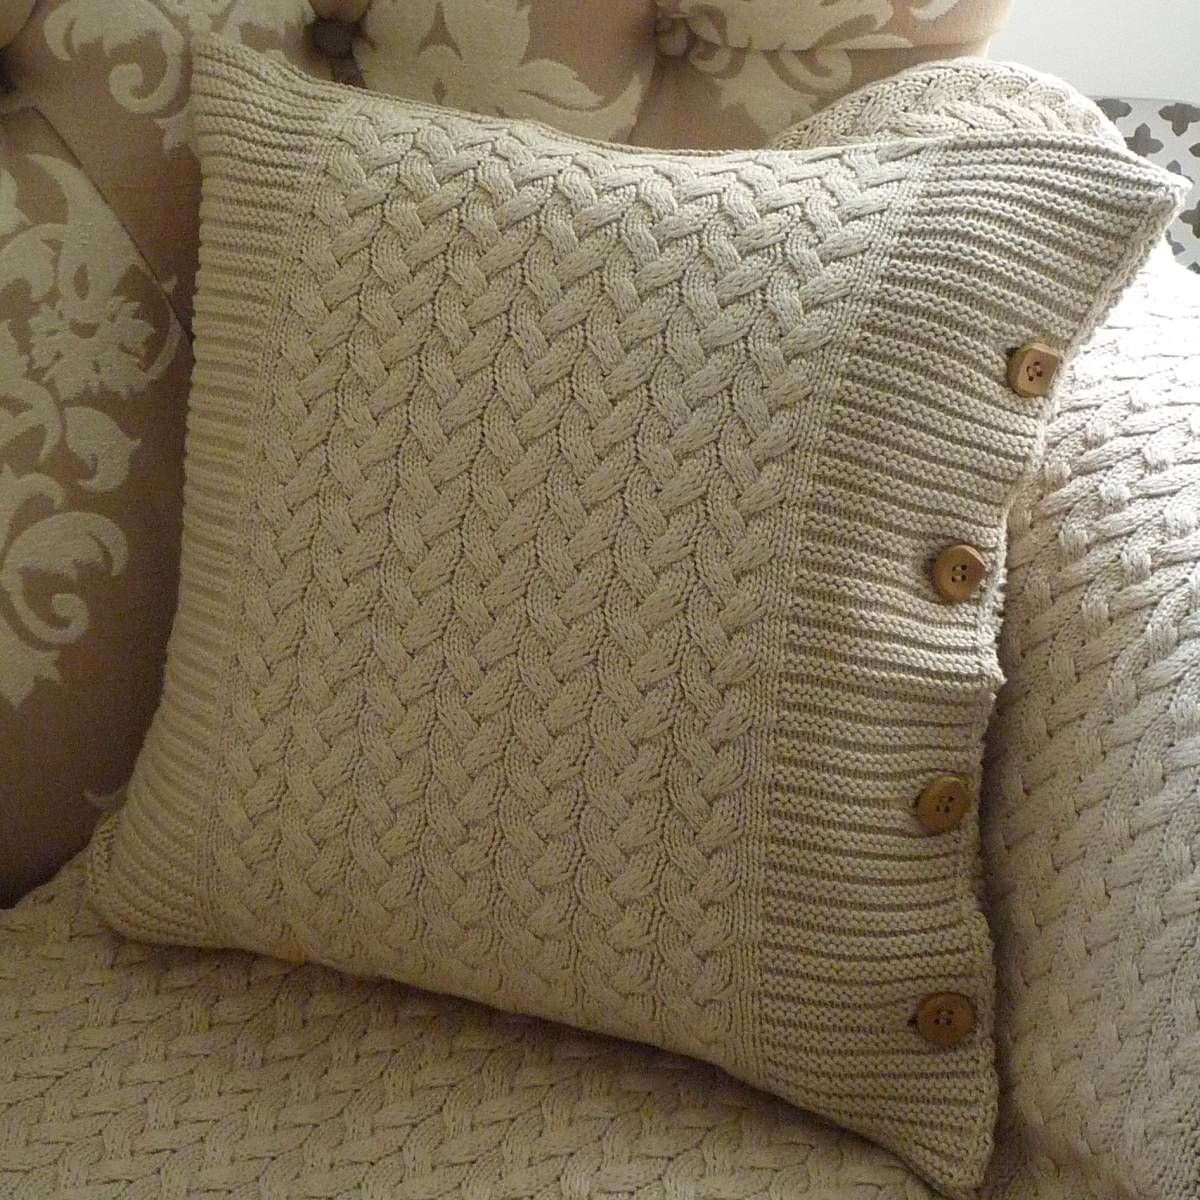 Knitting Pattern For Cushion Covers : Brompton Beige Cable-Knit Cushion Knitting Pinterest Cable, Knit croche...